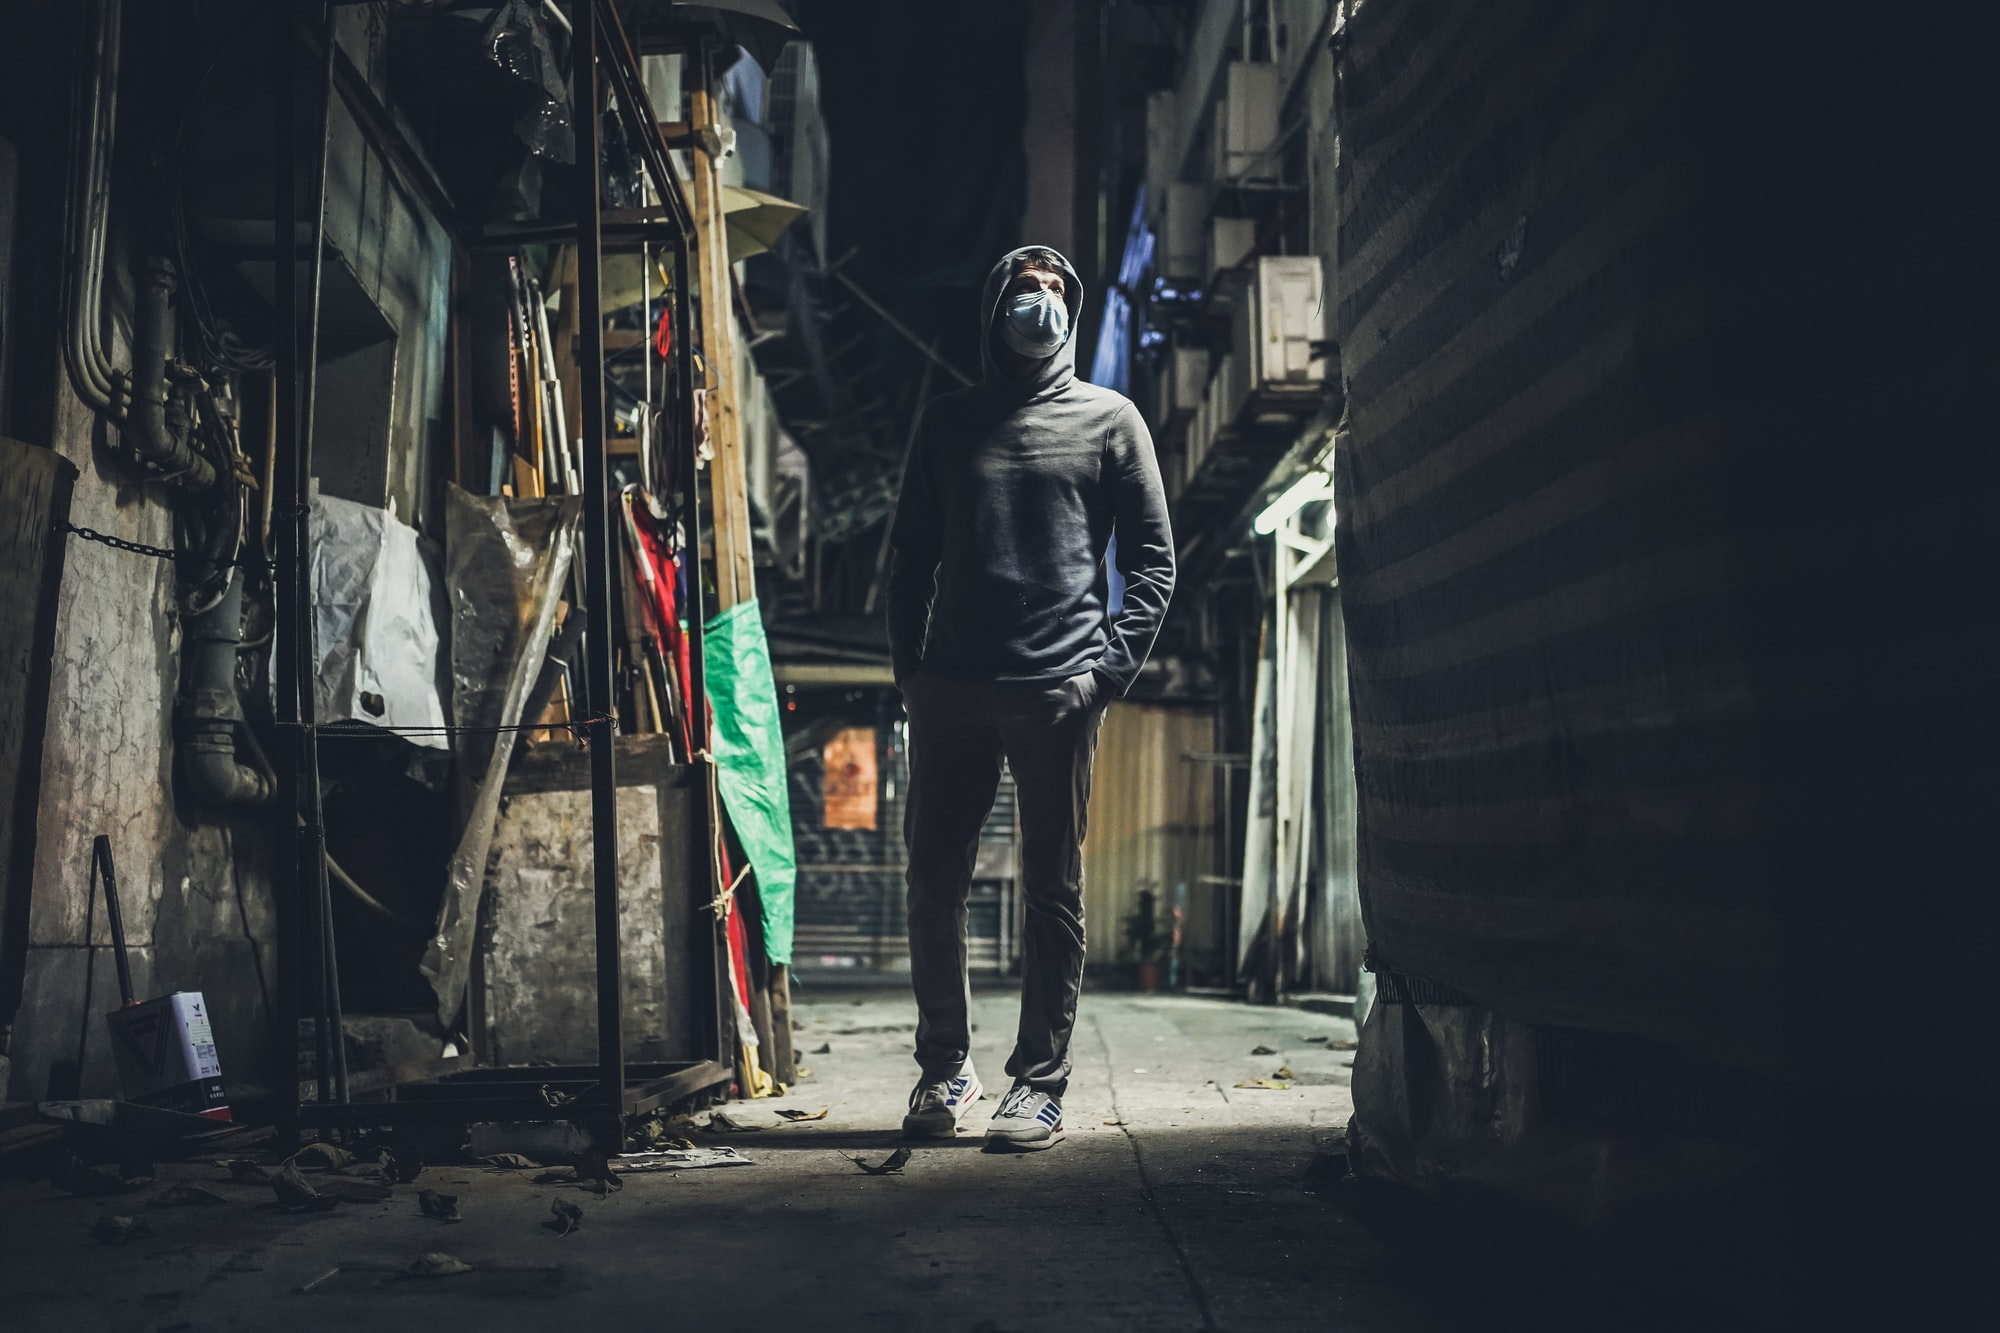 small spooky side alley somewhere in Hong Kong with face mask